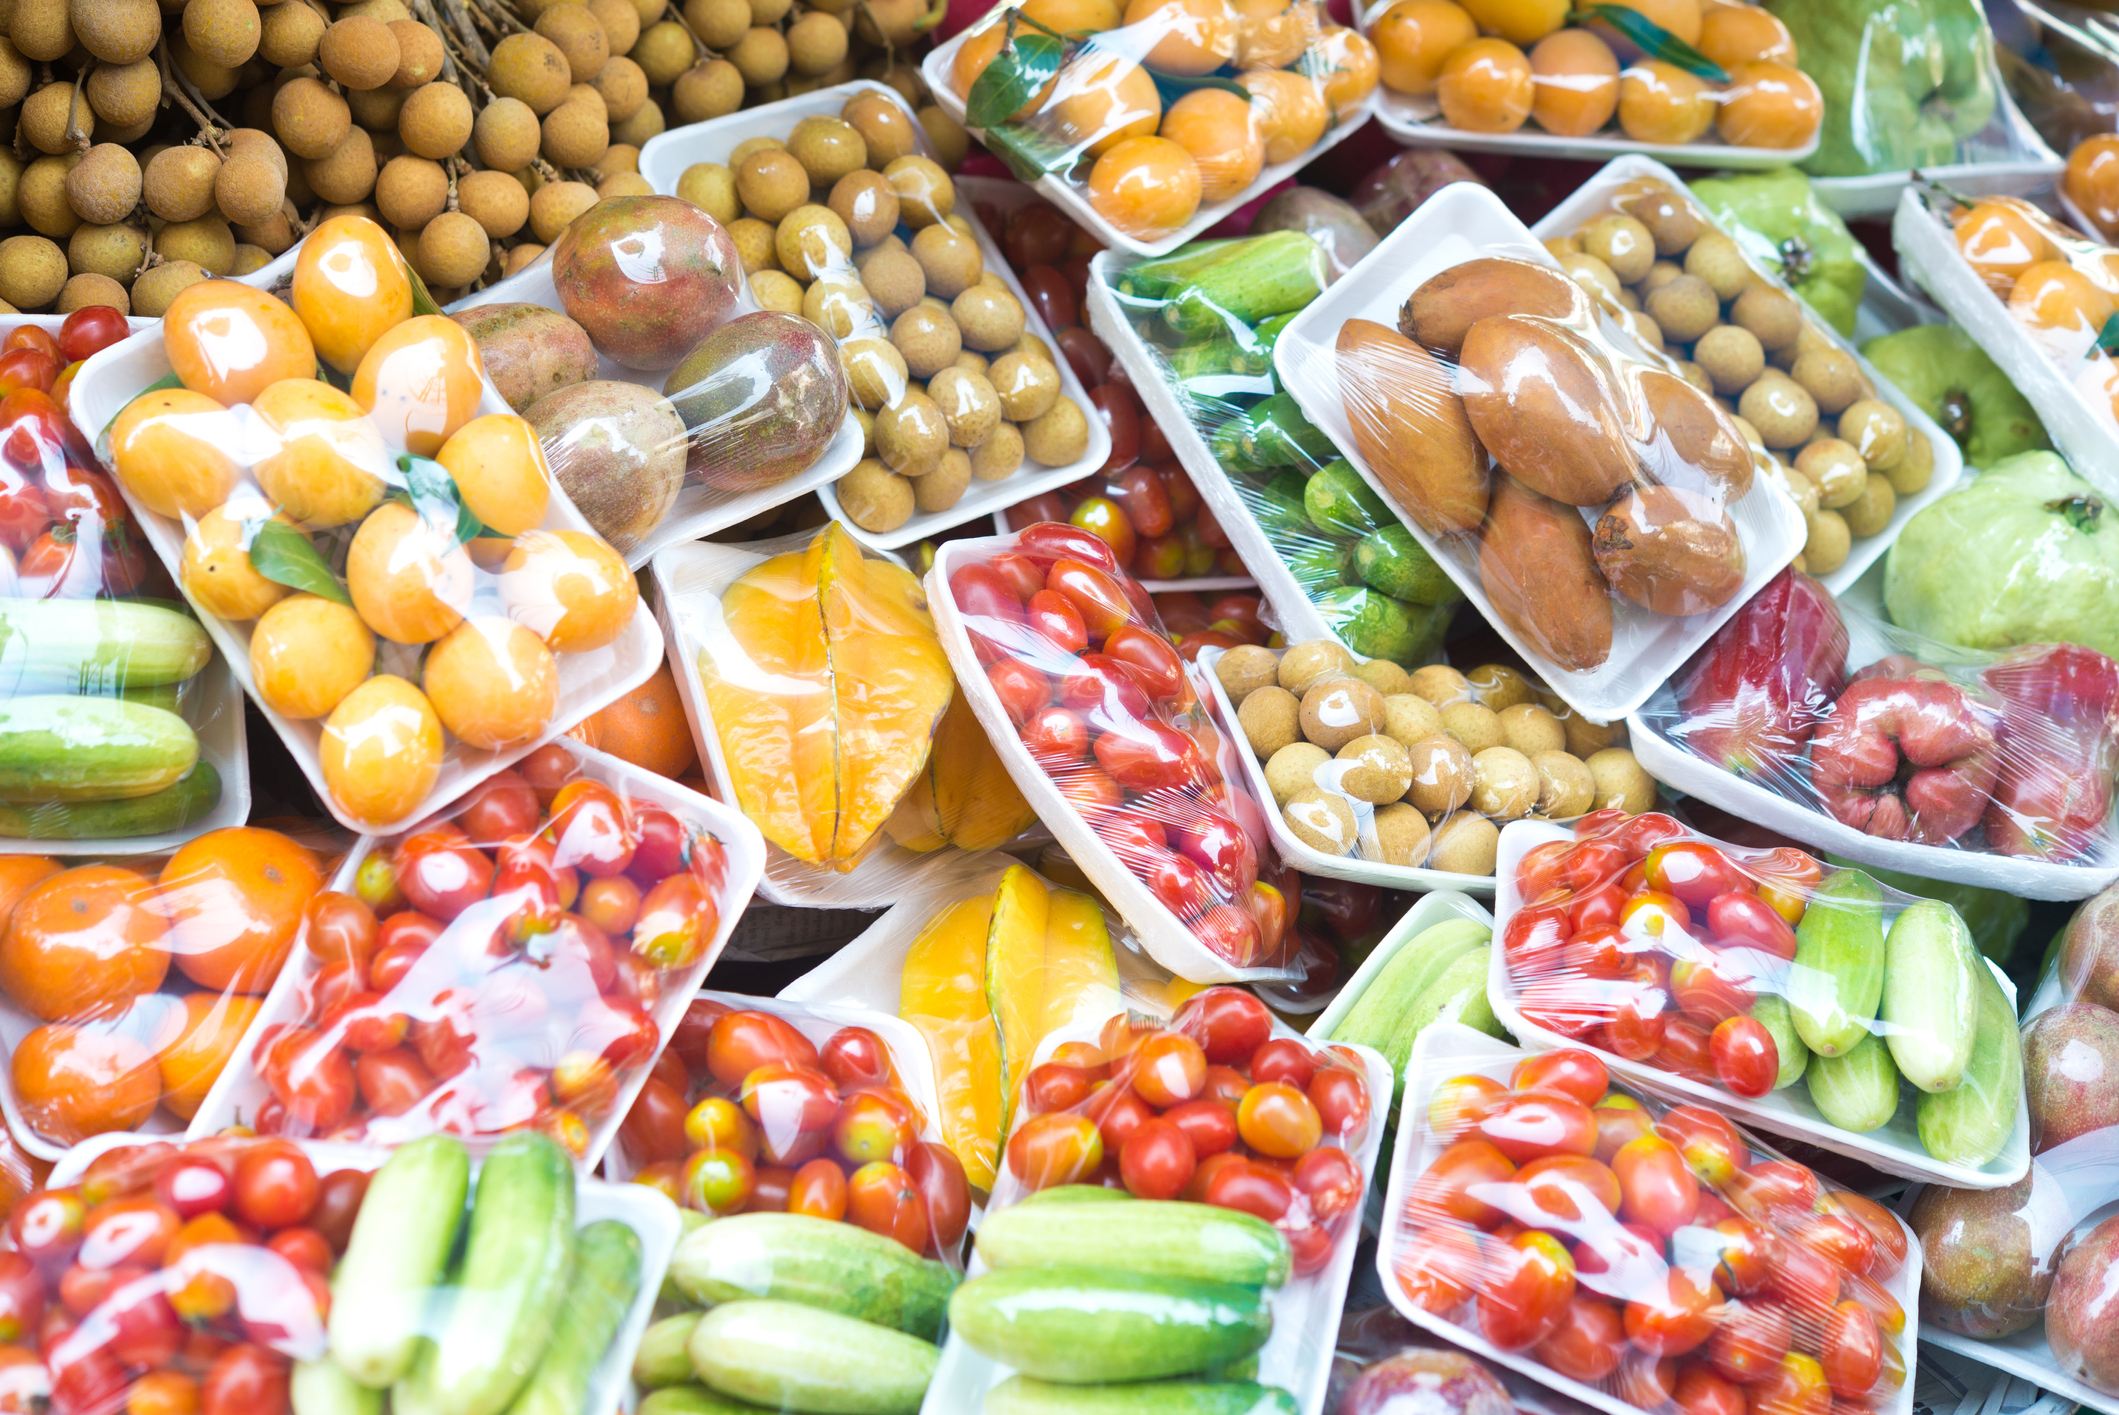 Fruit and plastic packaging